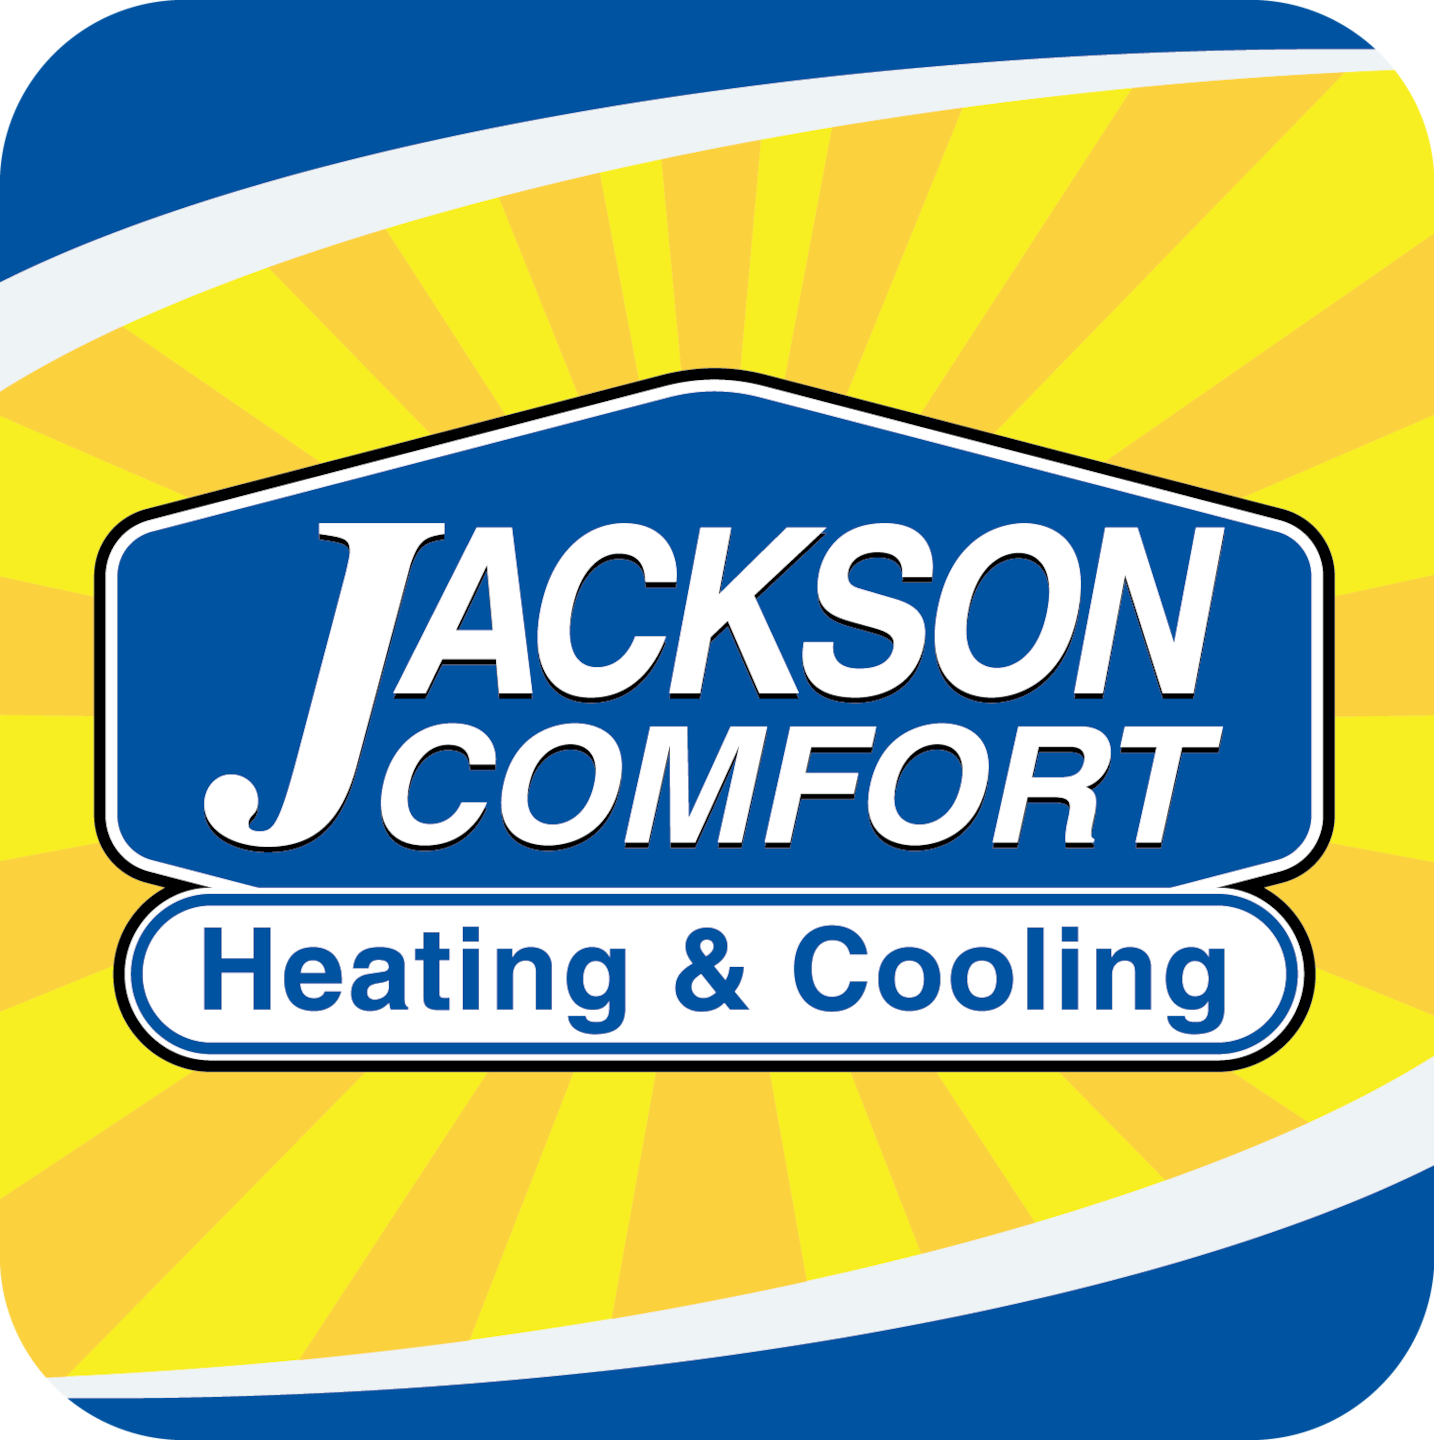 Jackson Comfort Heating & Cooling Systems Inc